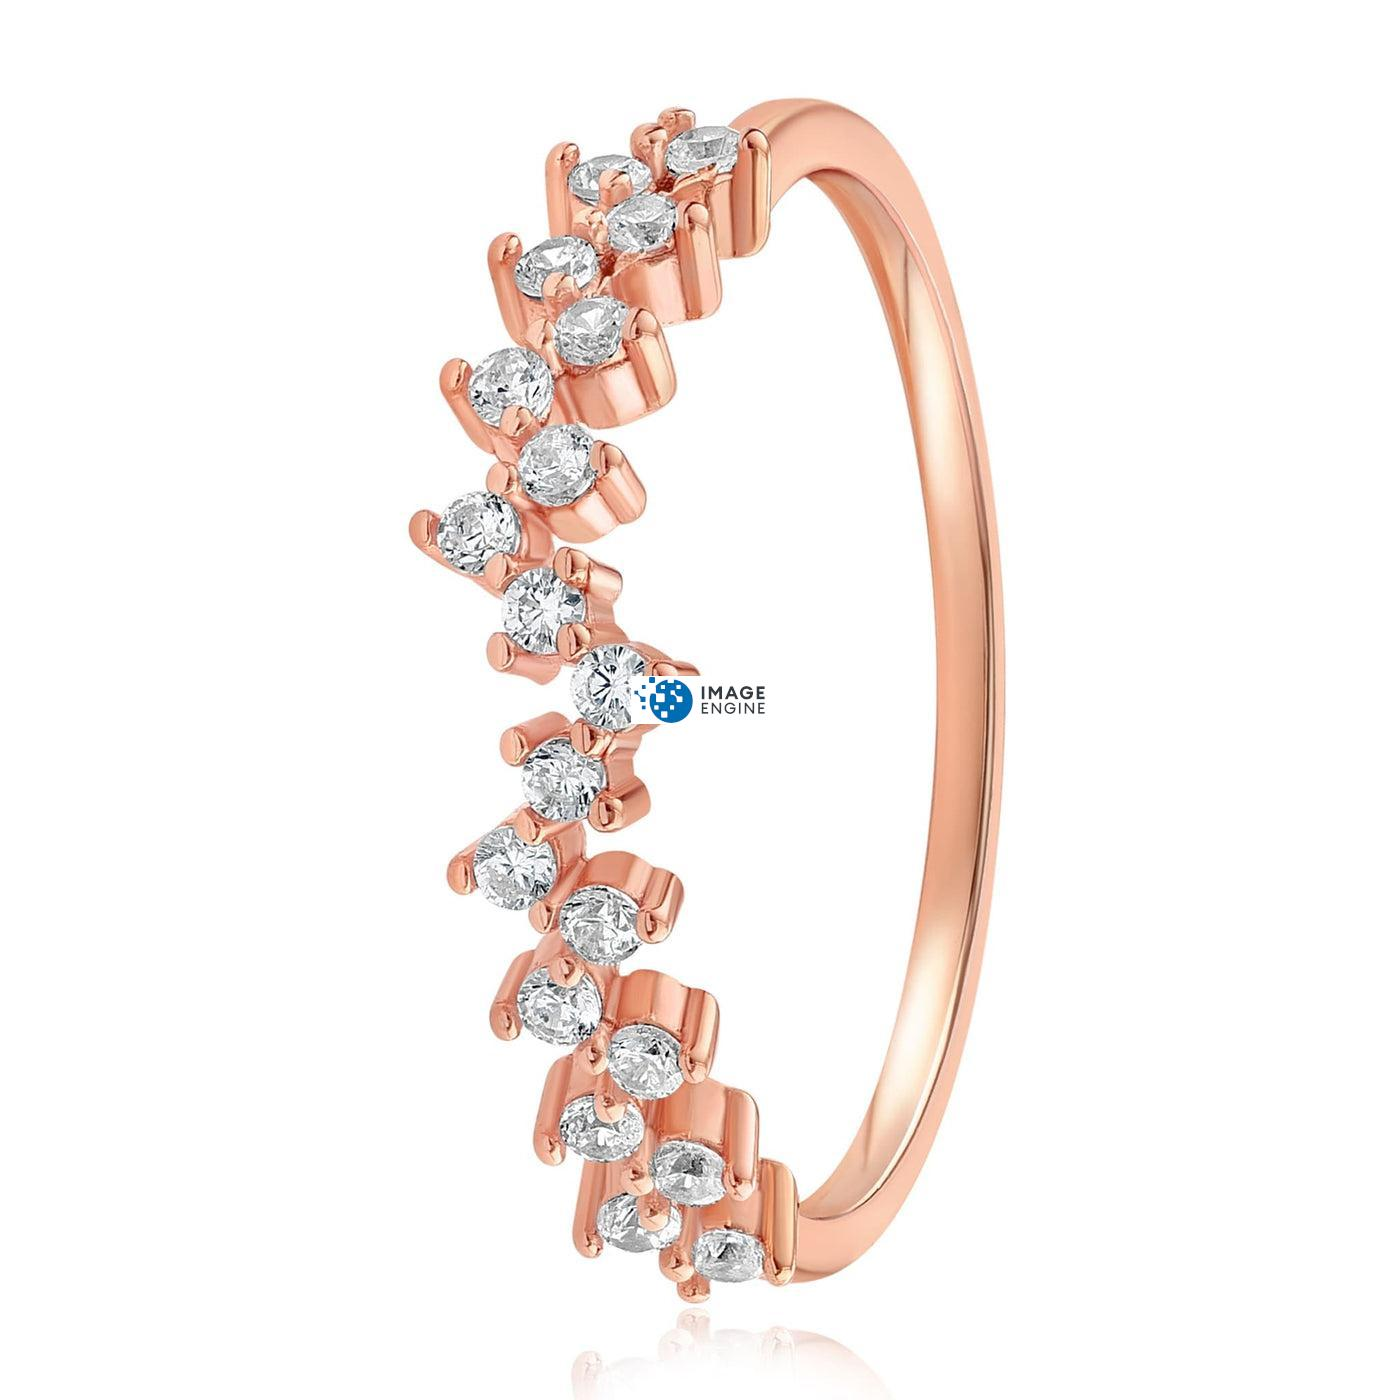 Esther Petite Cluster Ring - Side View - 18K Rose Gold Vermeil